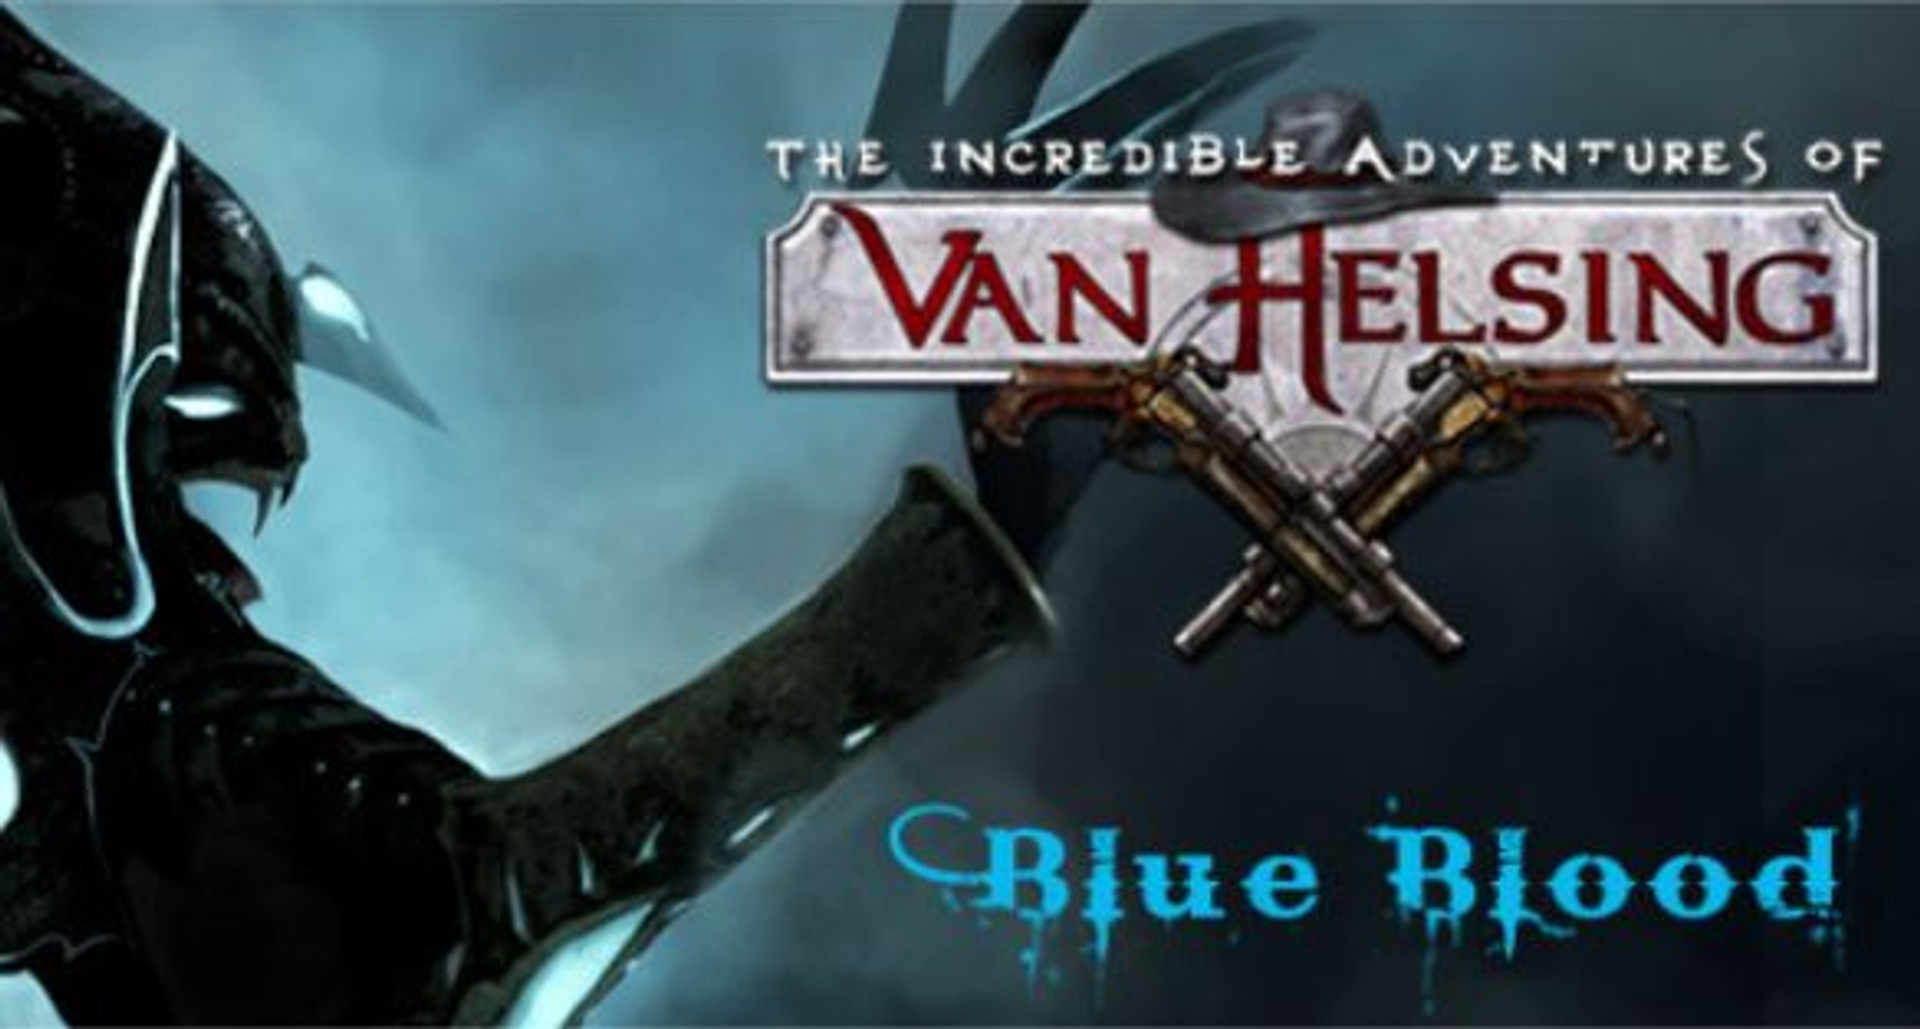 buy The Incredible Adventures of Van Helsing: Blue Blood cd key for all platform